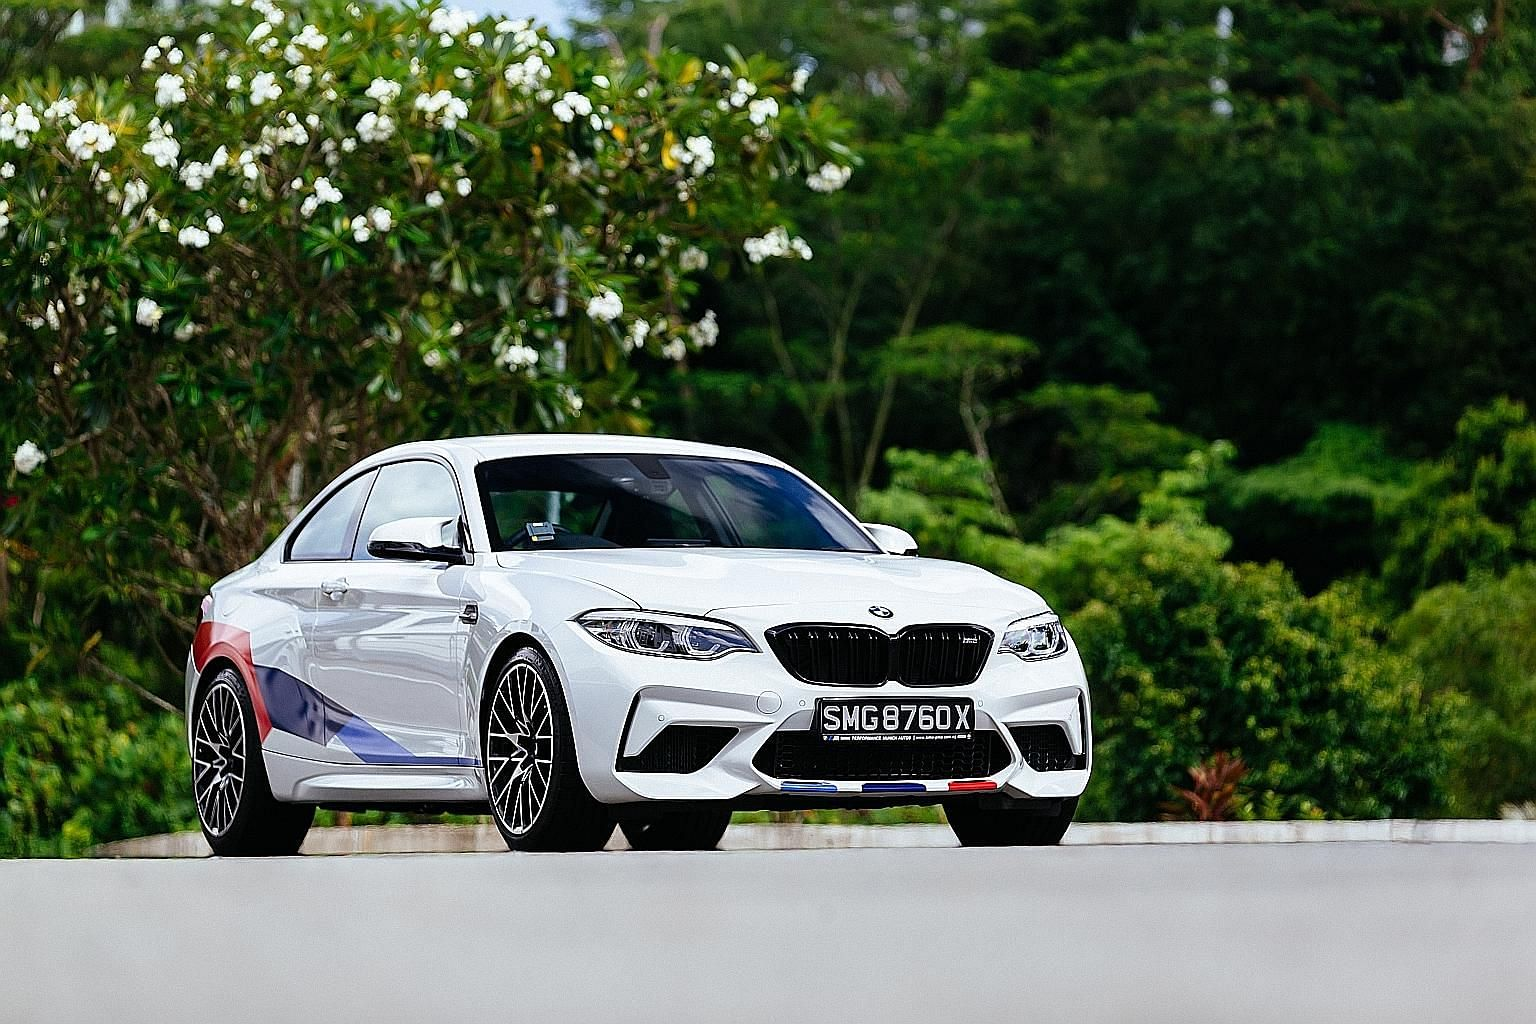 The BMW M2 Competition is responsive to steering input while its wheels maintain superb grip.